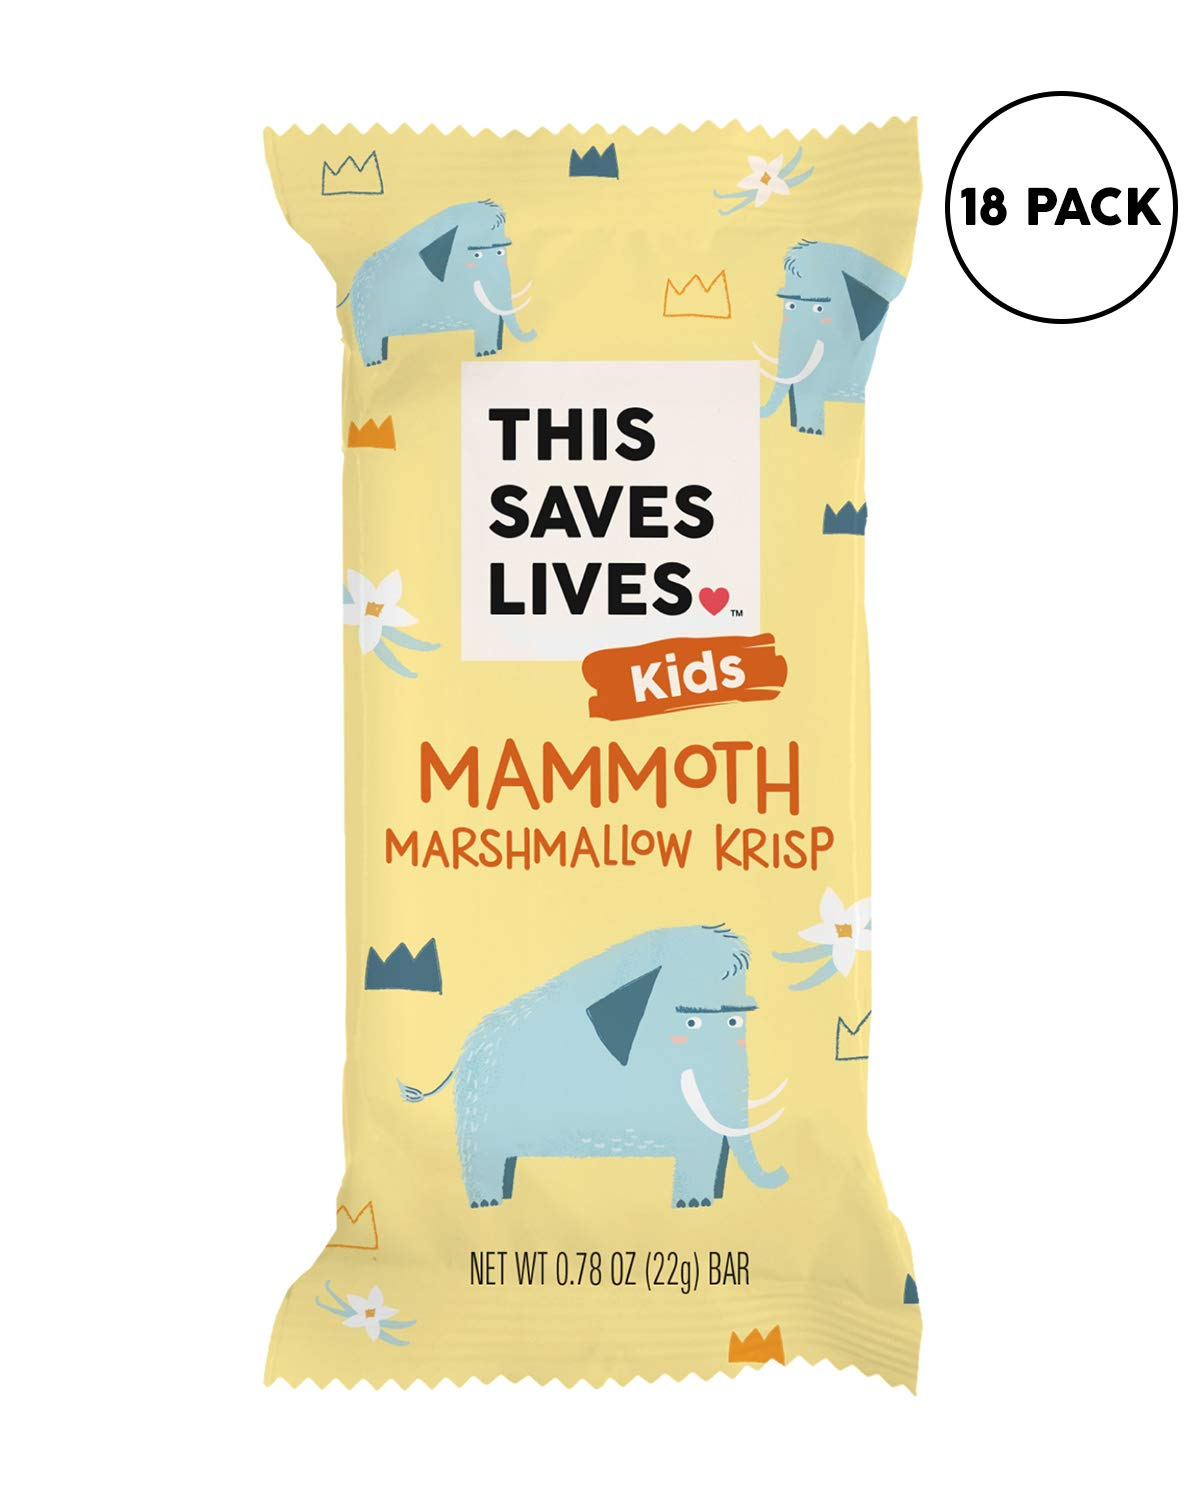 This Saves Lives Kids Rice Krispy Treats, Mammoth Marshmallow Krisp 18 Pack, Gluten Free Snack Bars, Healthy Snacks for Kids, Individually Wrapped, Nut Free, Non GMO, Kosher, 0.78oz Bars